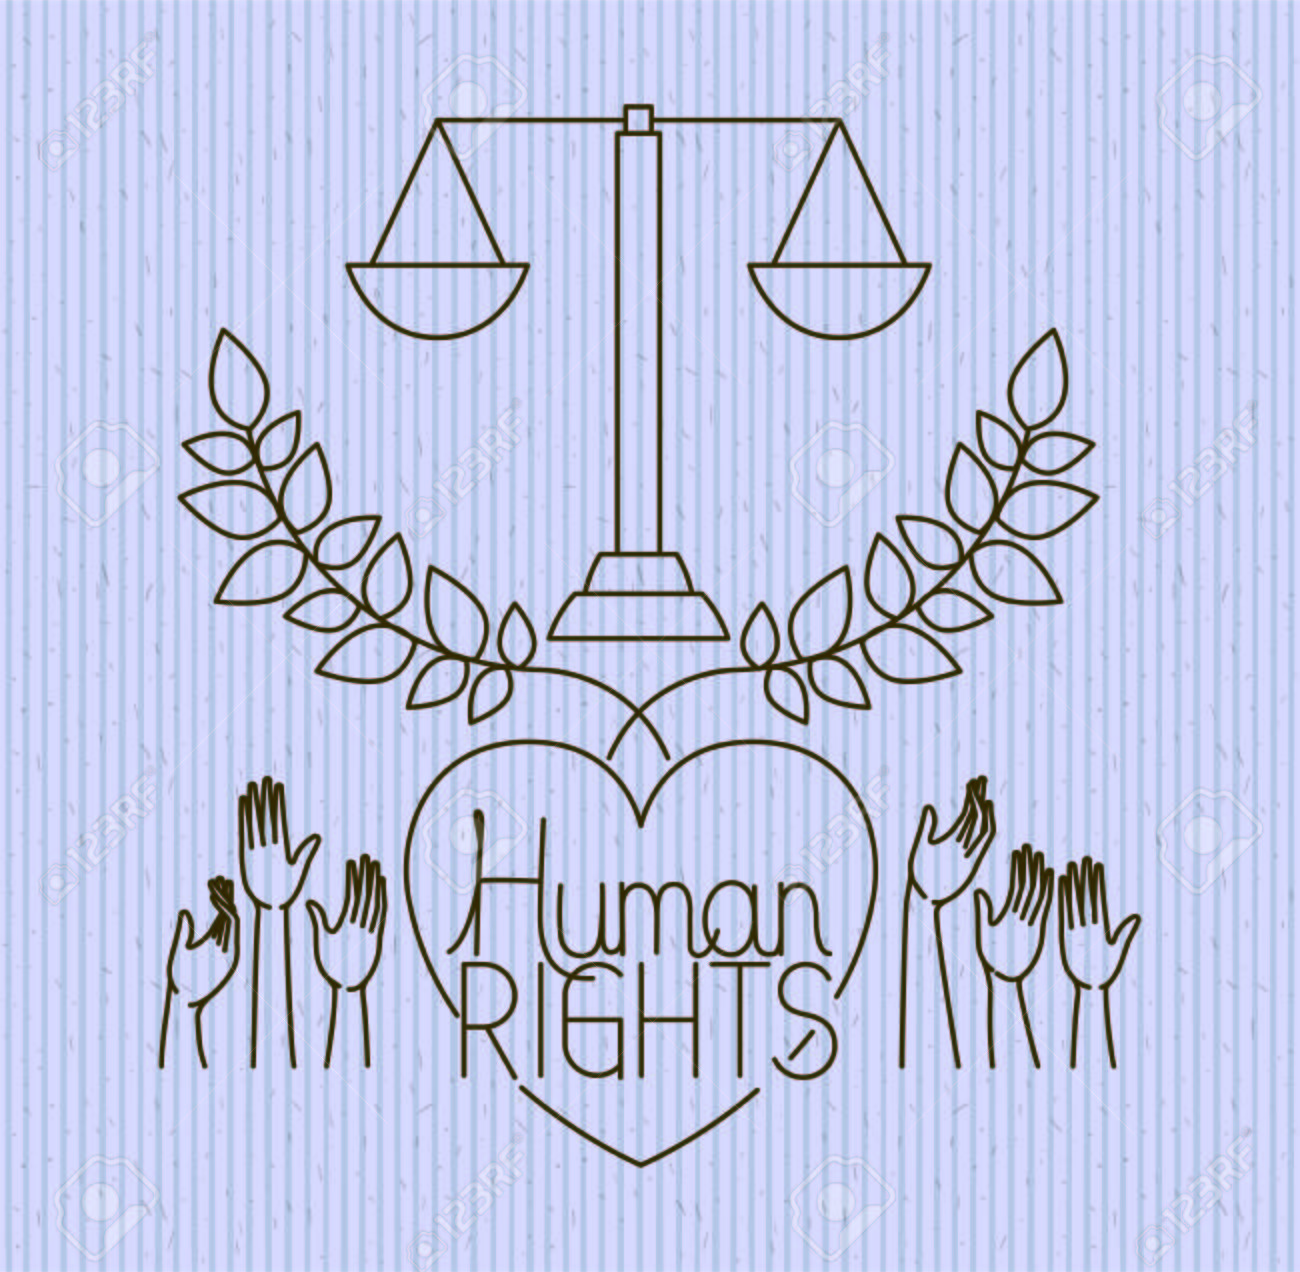 Hand With Heart Human Rights Drawns Vector Illustration Design